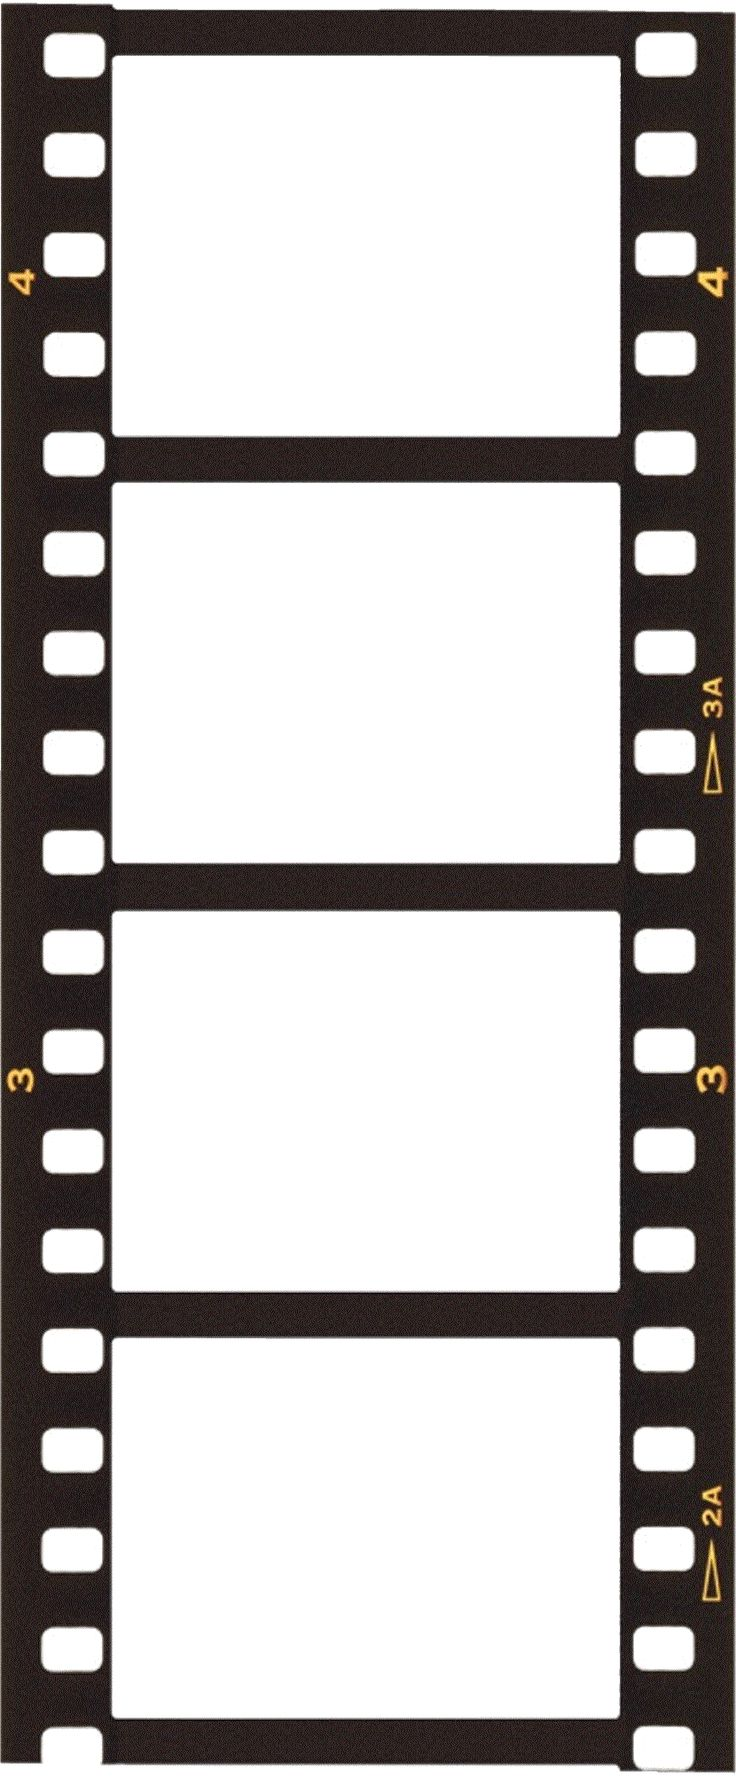 25 Best Ideas About Film Reels On Pinterest Hollywood